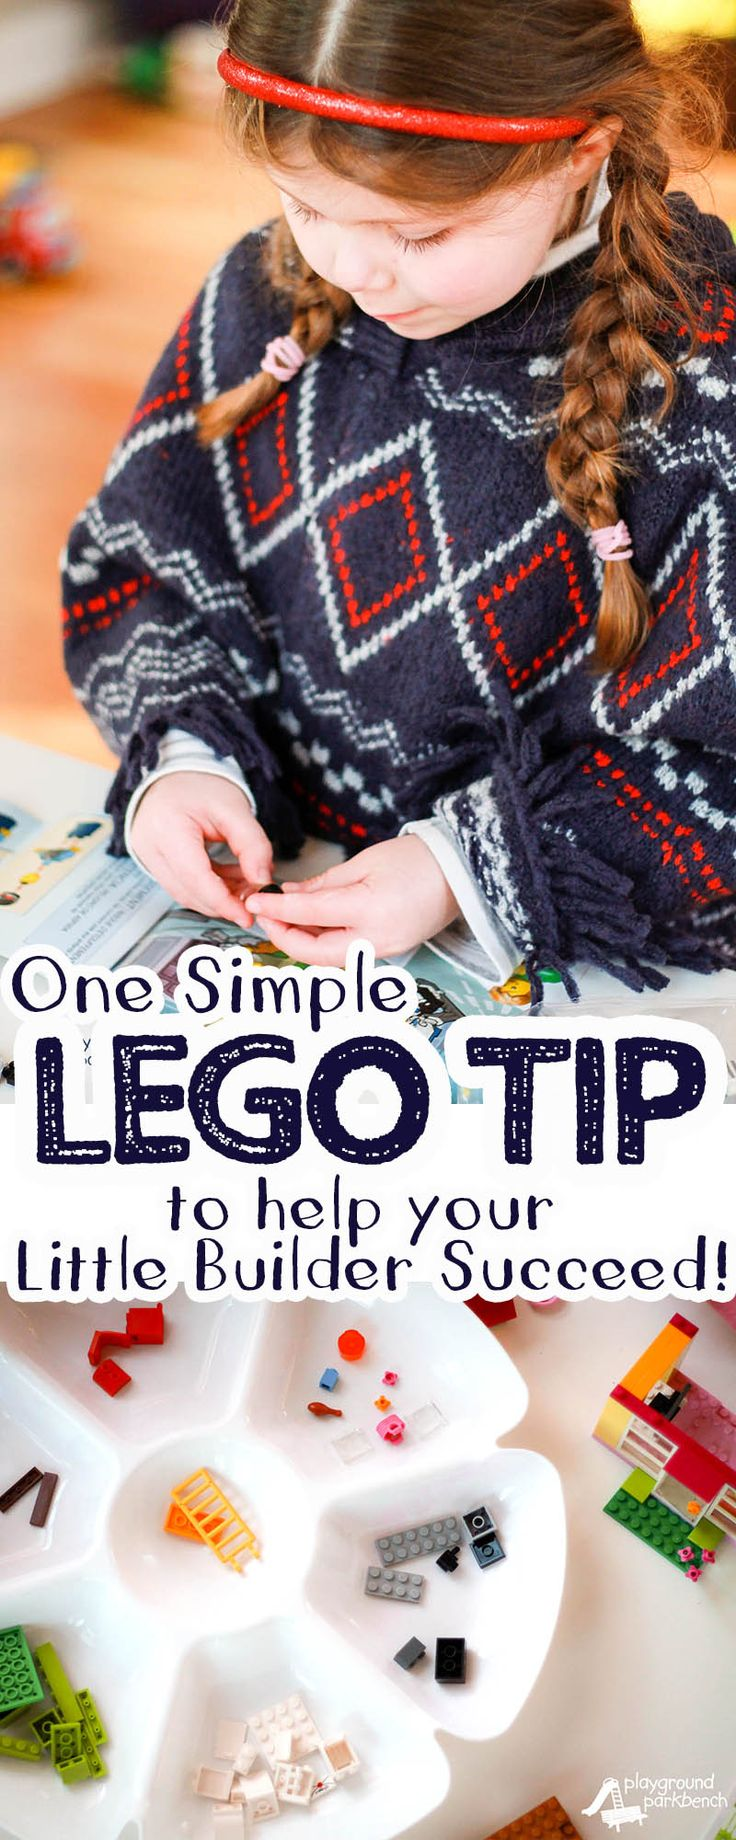 Is your little builder ready for @LEGO Junior? My 5 year old loves to build, and was begging for 'Real LEGO' toys... but I was worried about bringing the small pieces into our house with younger siblings in the house. This one simple tip eased my worries, and helped her use her first LEGO Junior set independently and confidently! #CreateBuildLEGOJUNIORS #Sponsored | LEGO | STEM | STEAM | Building Toys | Preschool | Best Toys for Preschool |